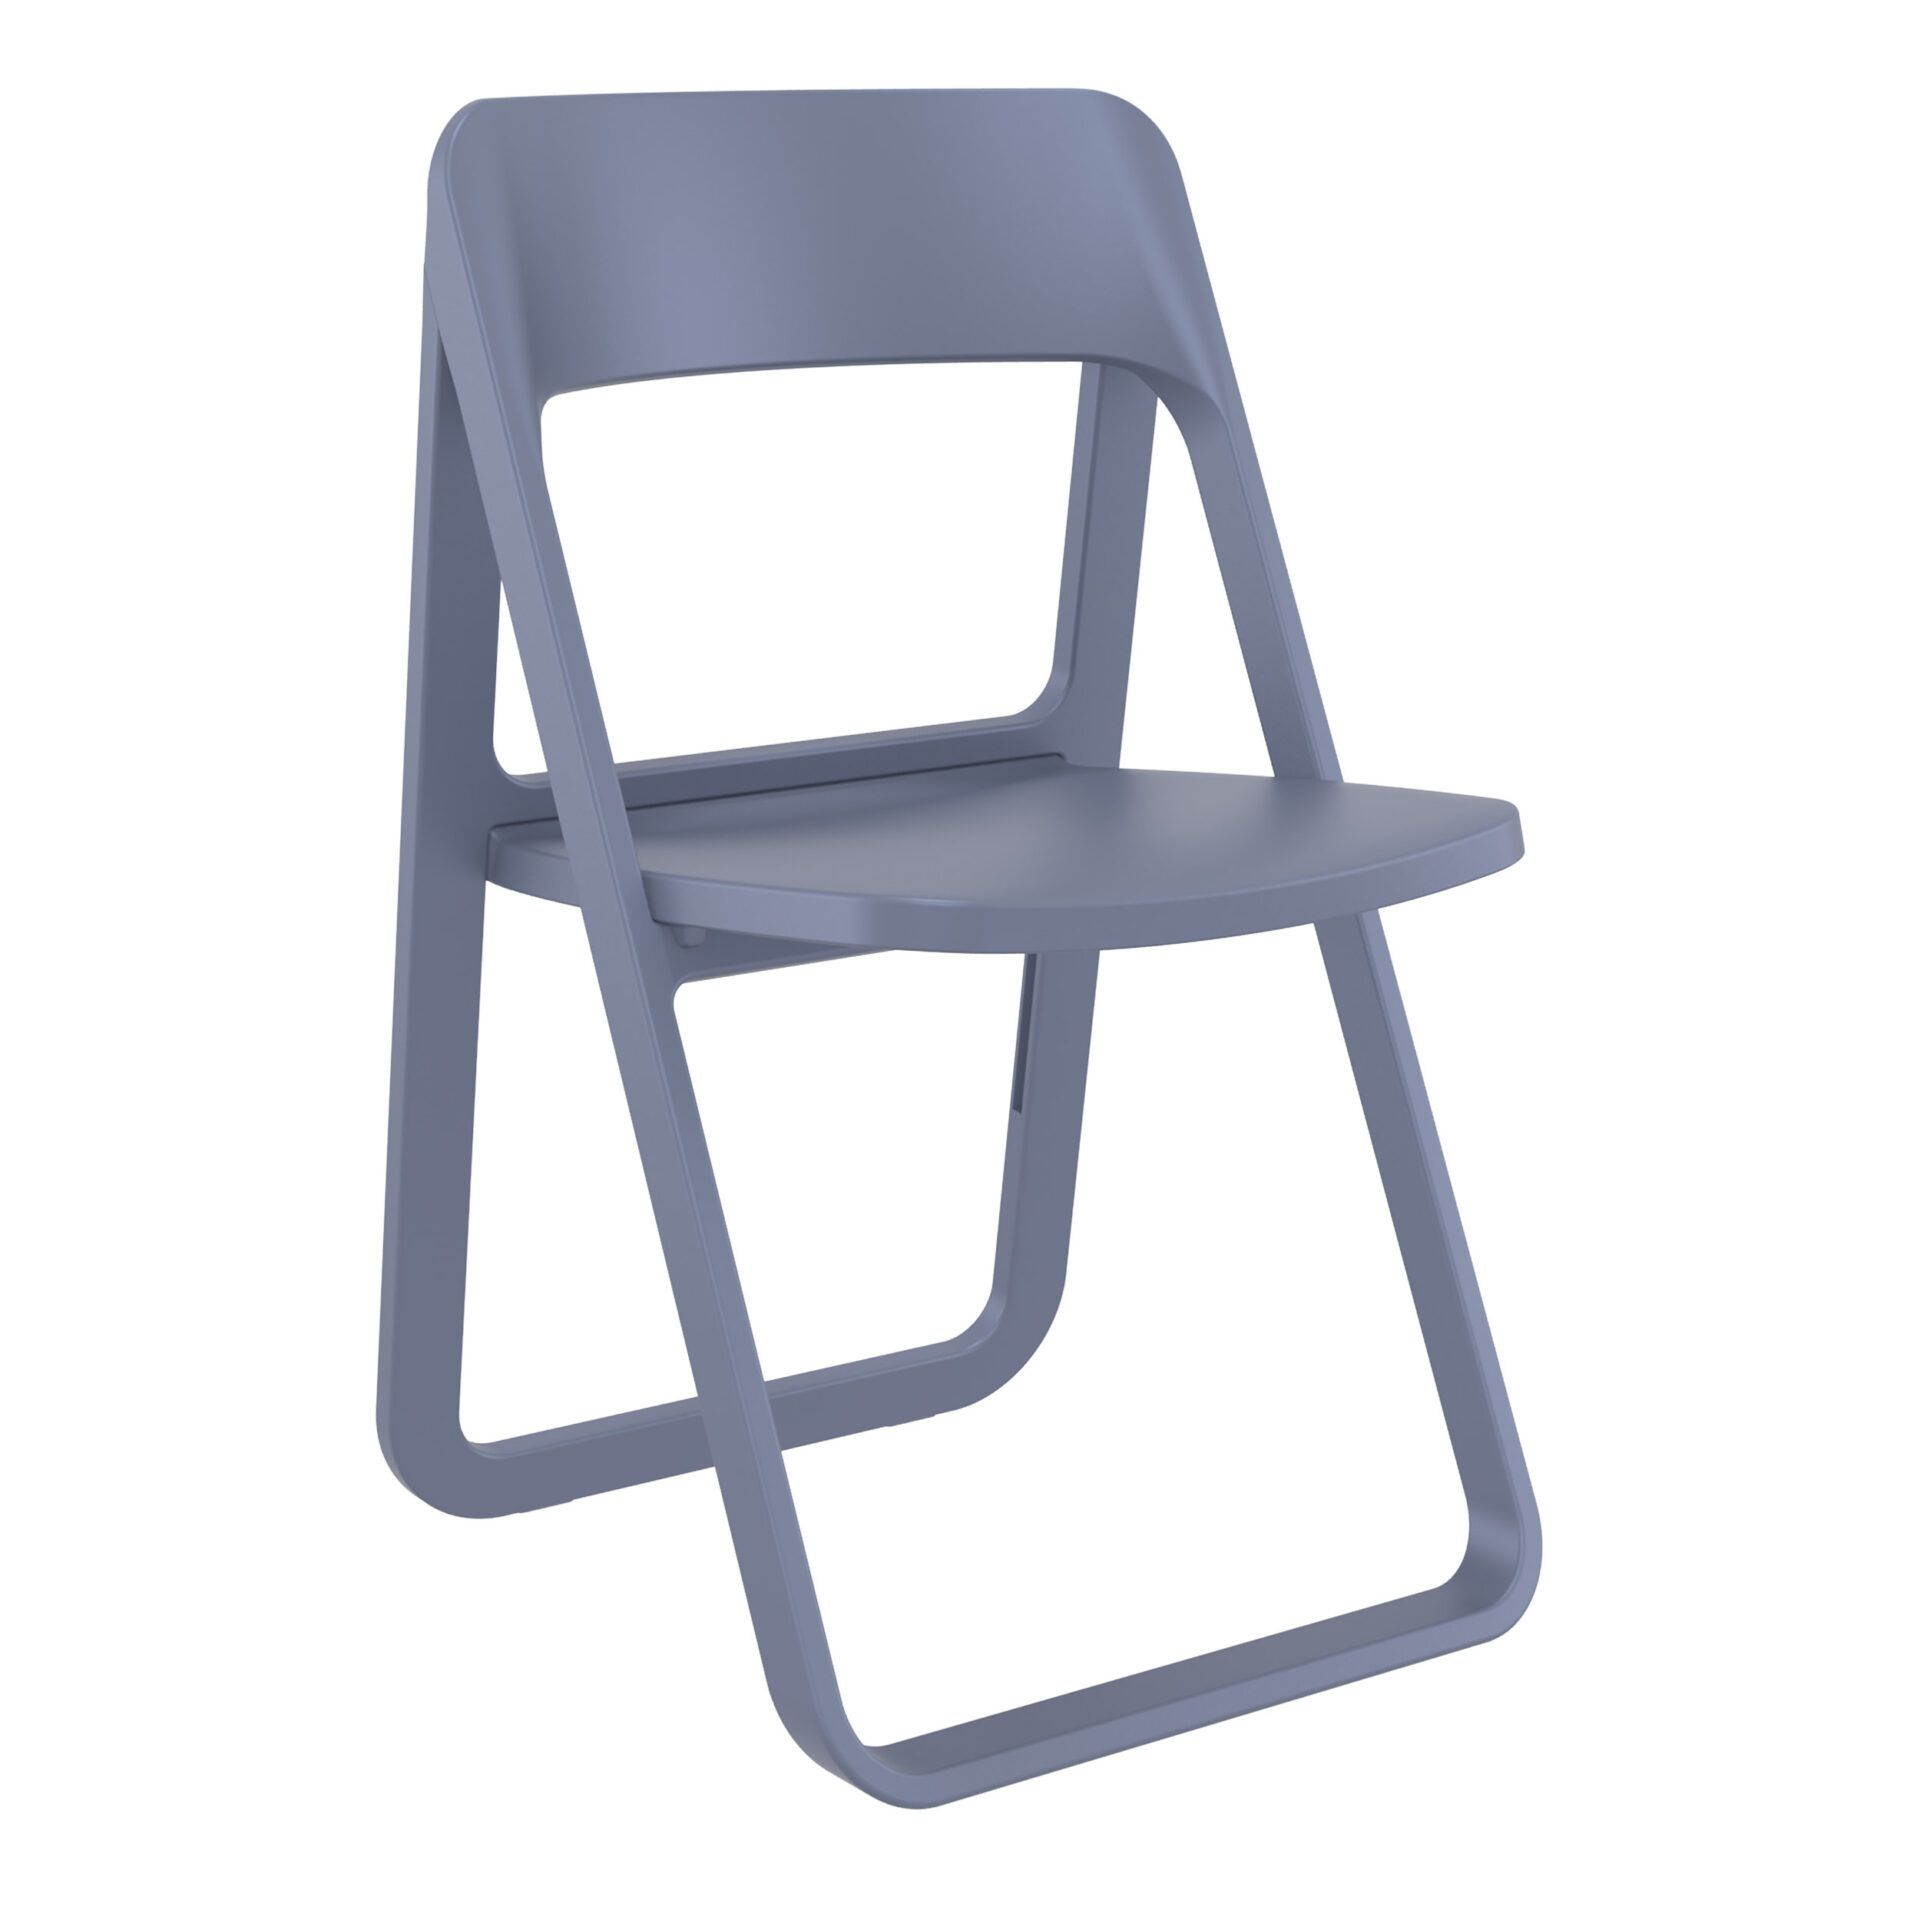 polypropylene dream folding chair darkgrey front side